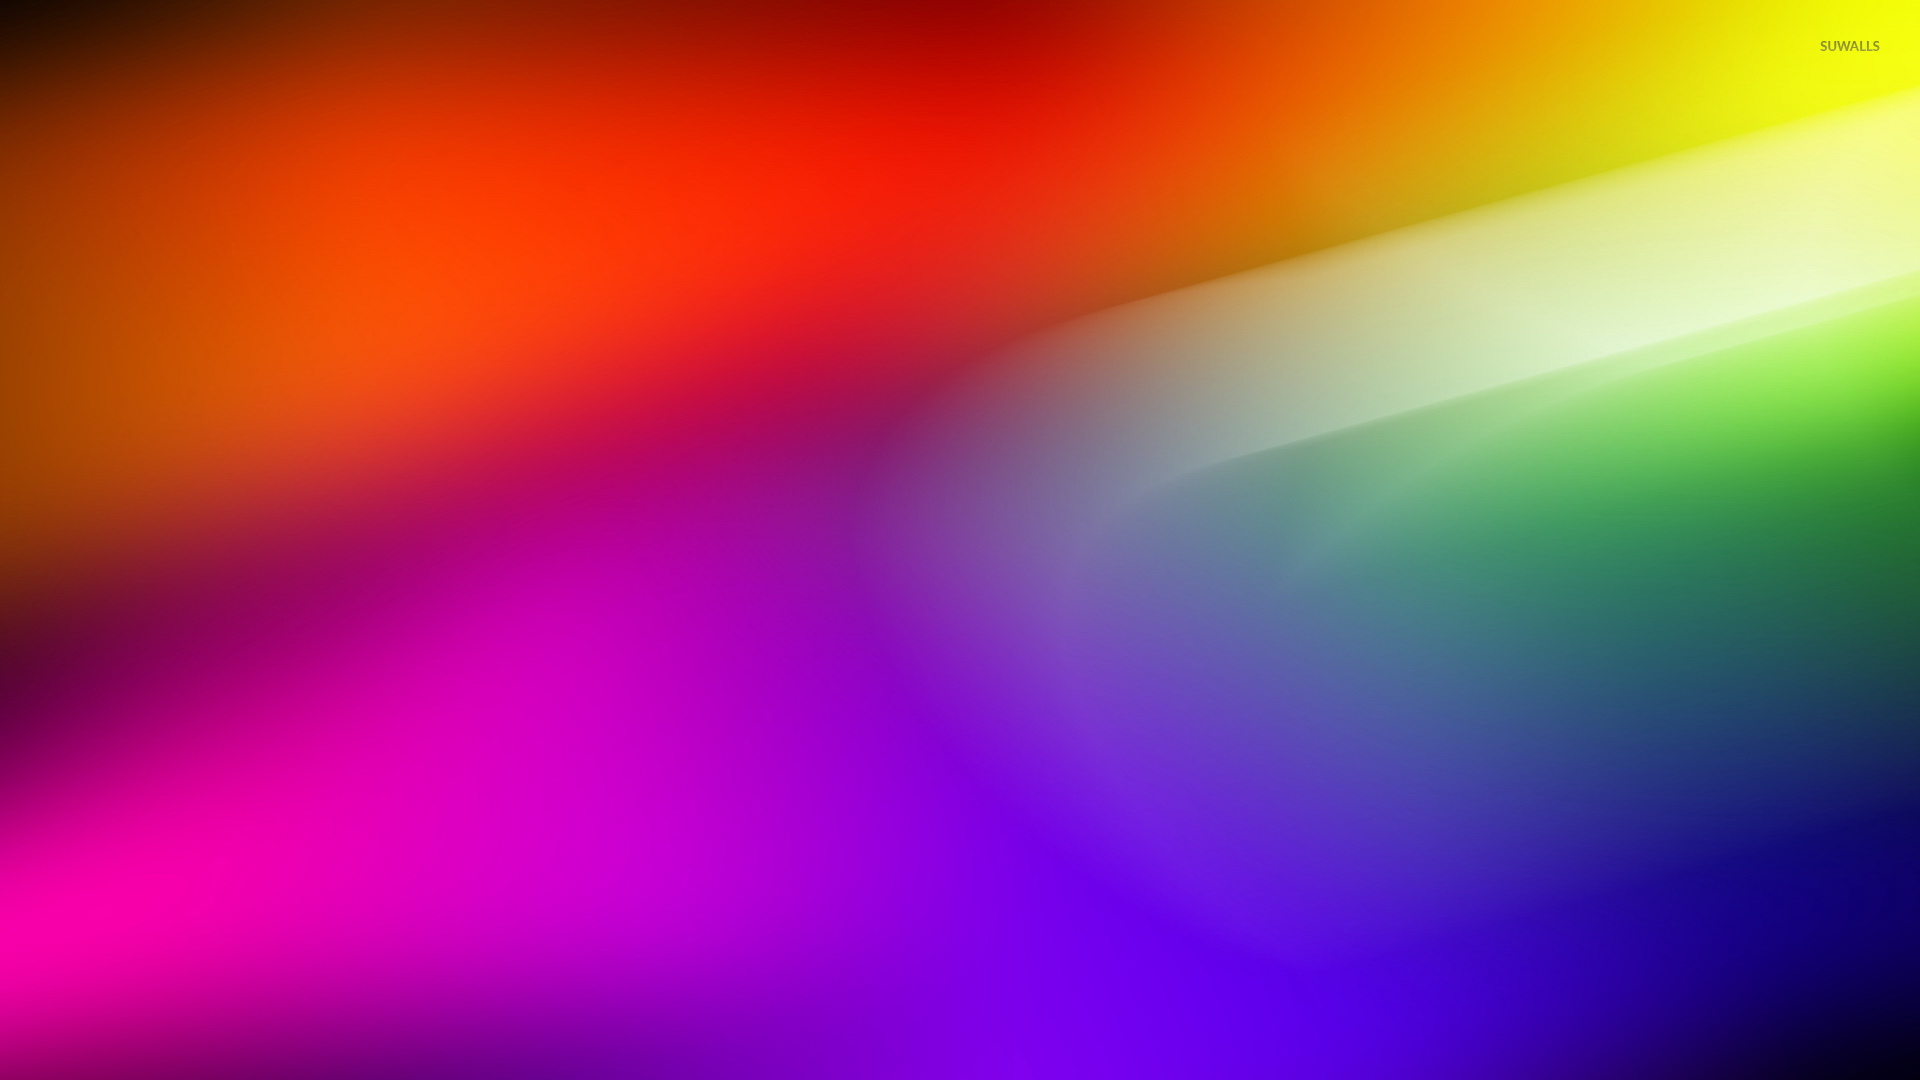 vivid blur wallpaper - abstract wallpapers - #46008